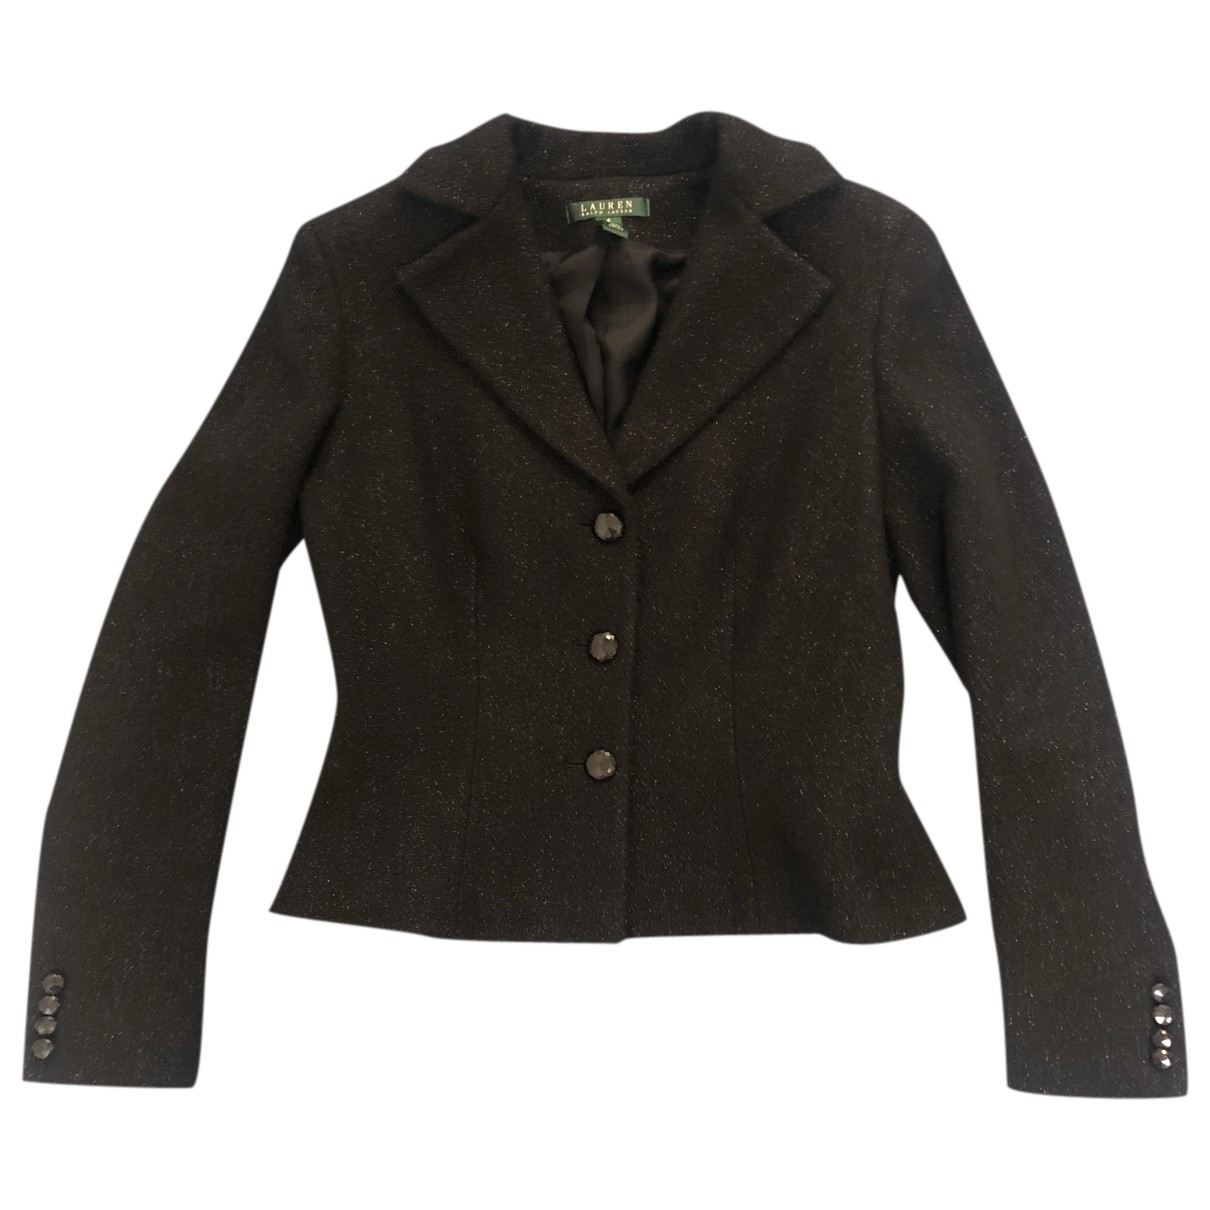 Lauren Ralph Lauren \N Black Wool jacket for Women 6 UK